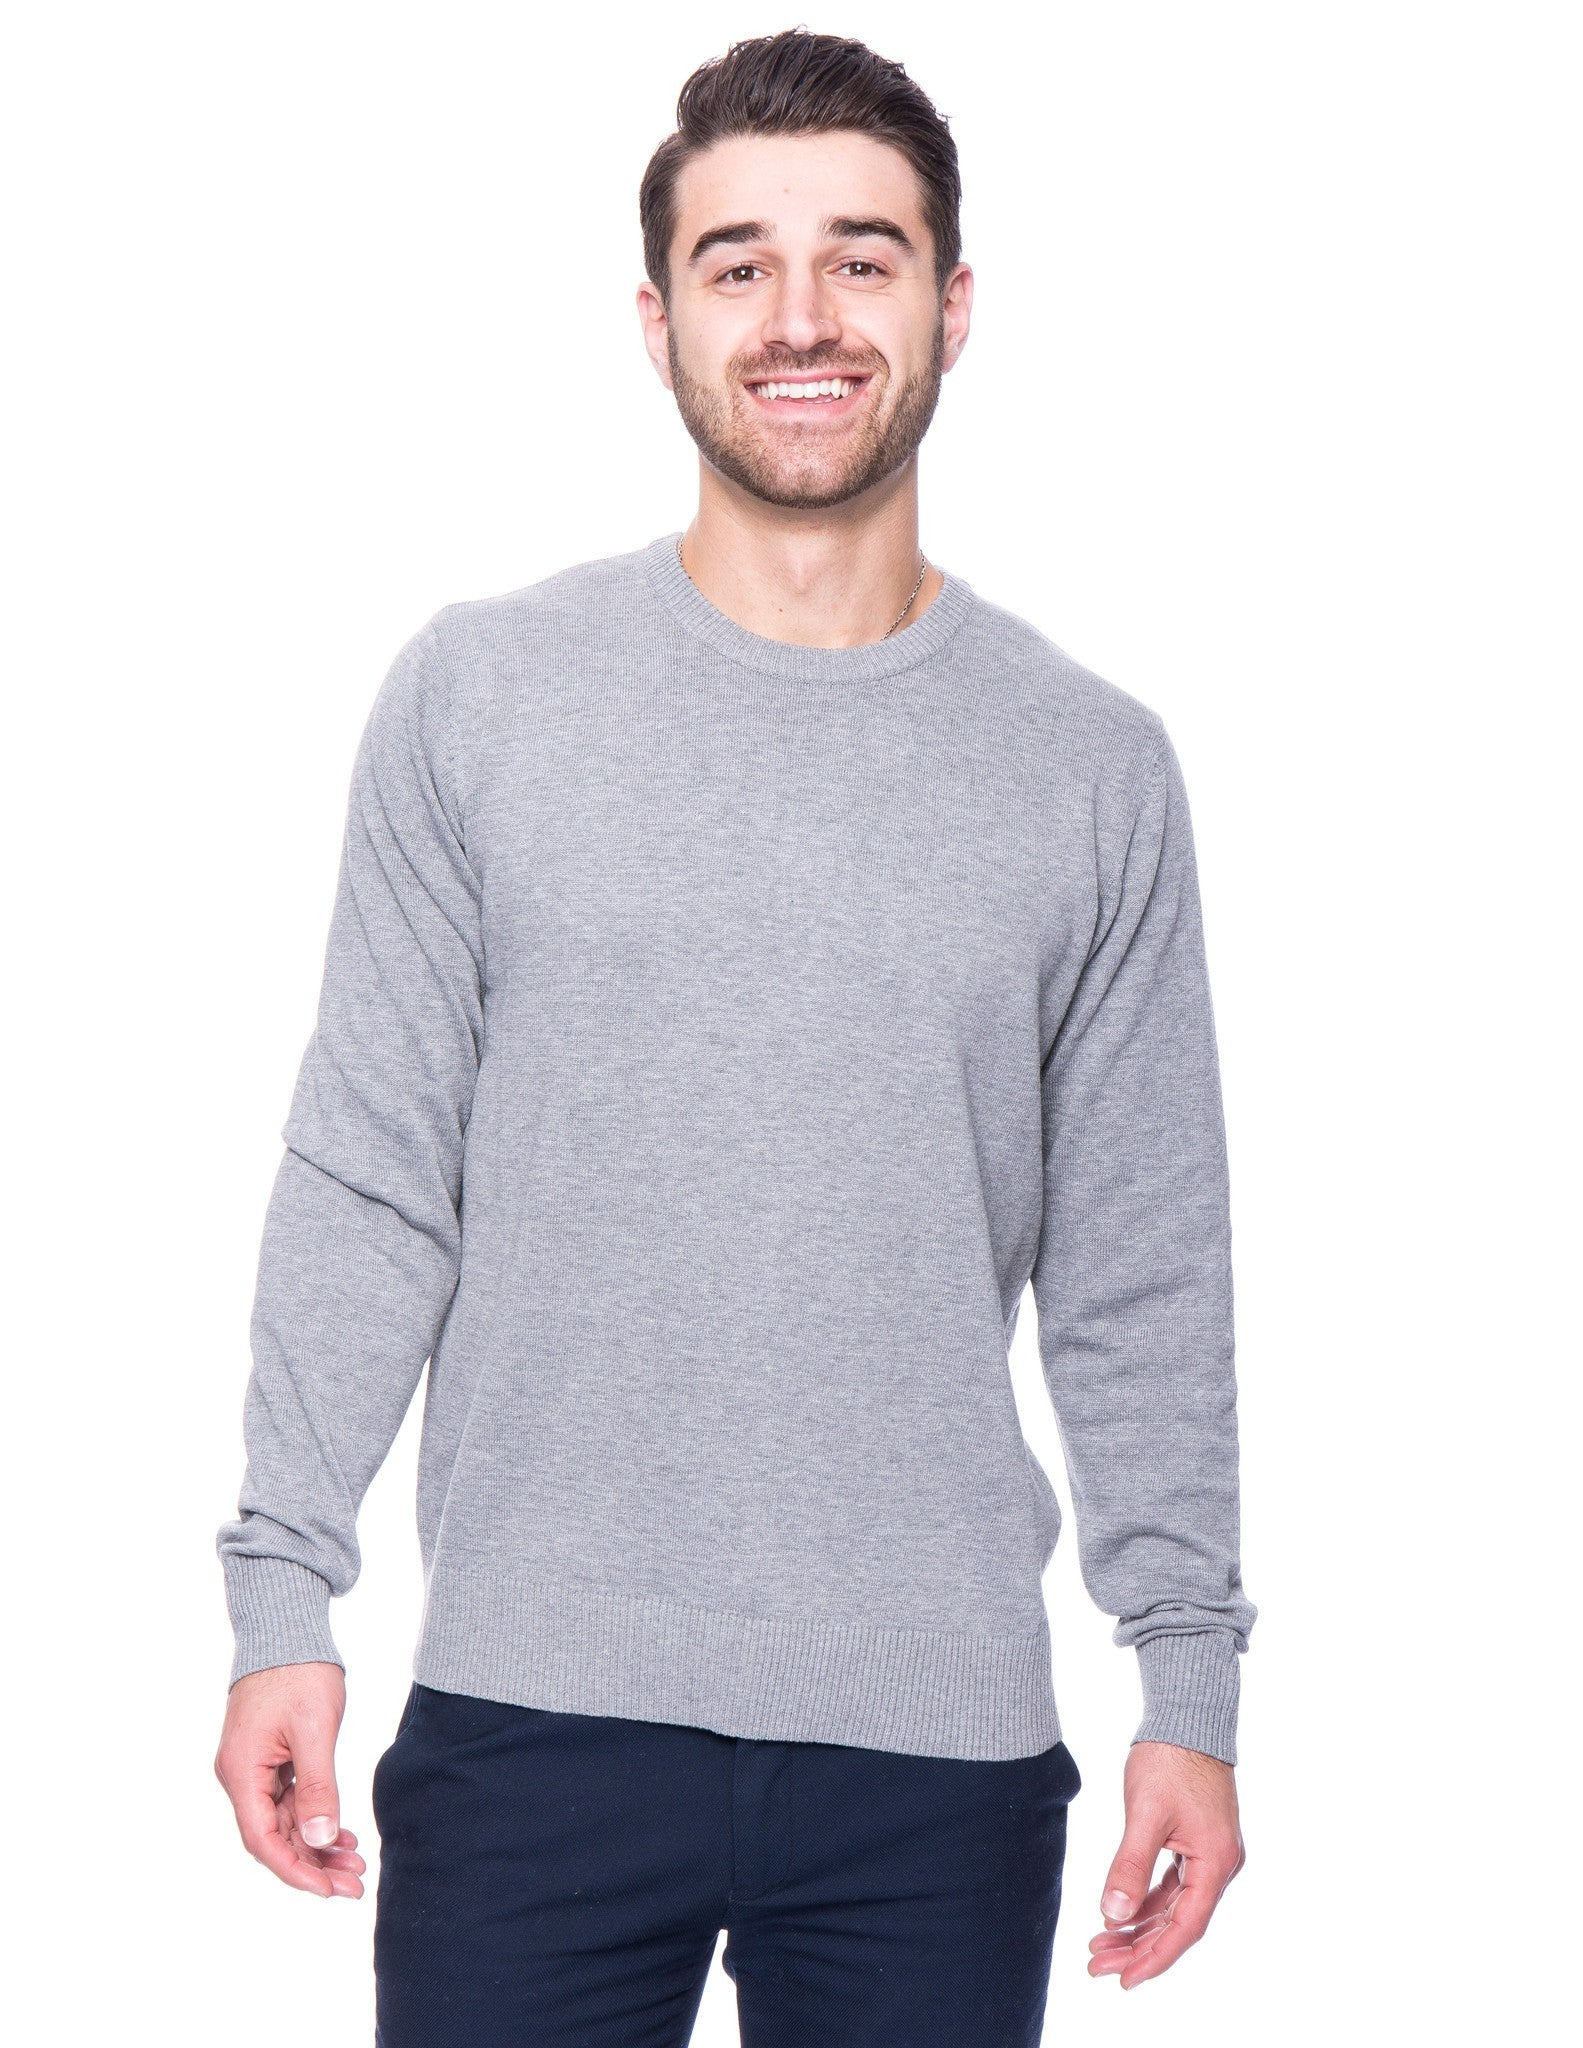 Cotton Crew Neck Sweater - Heather Grey